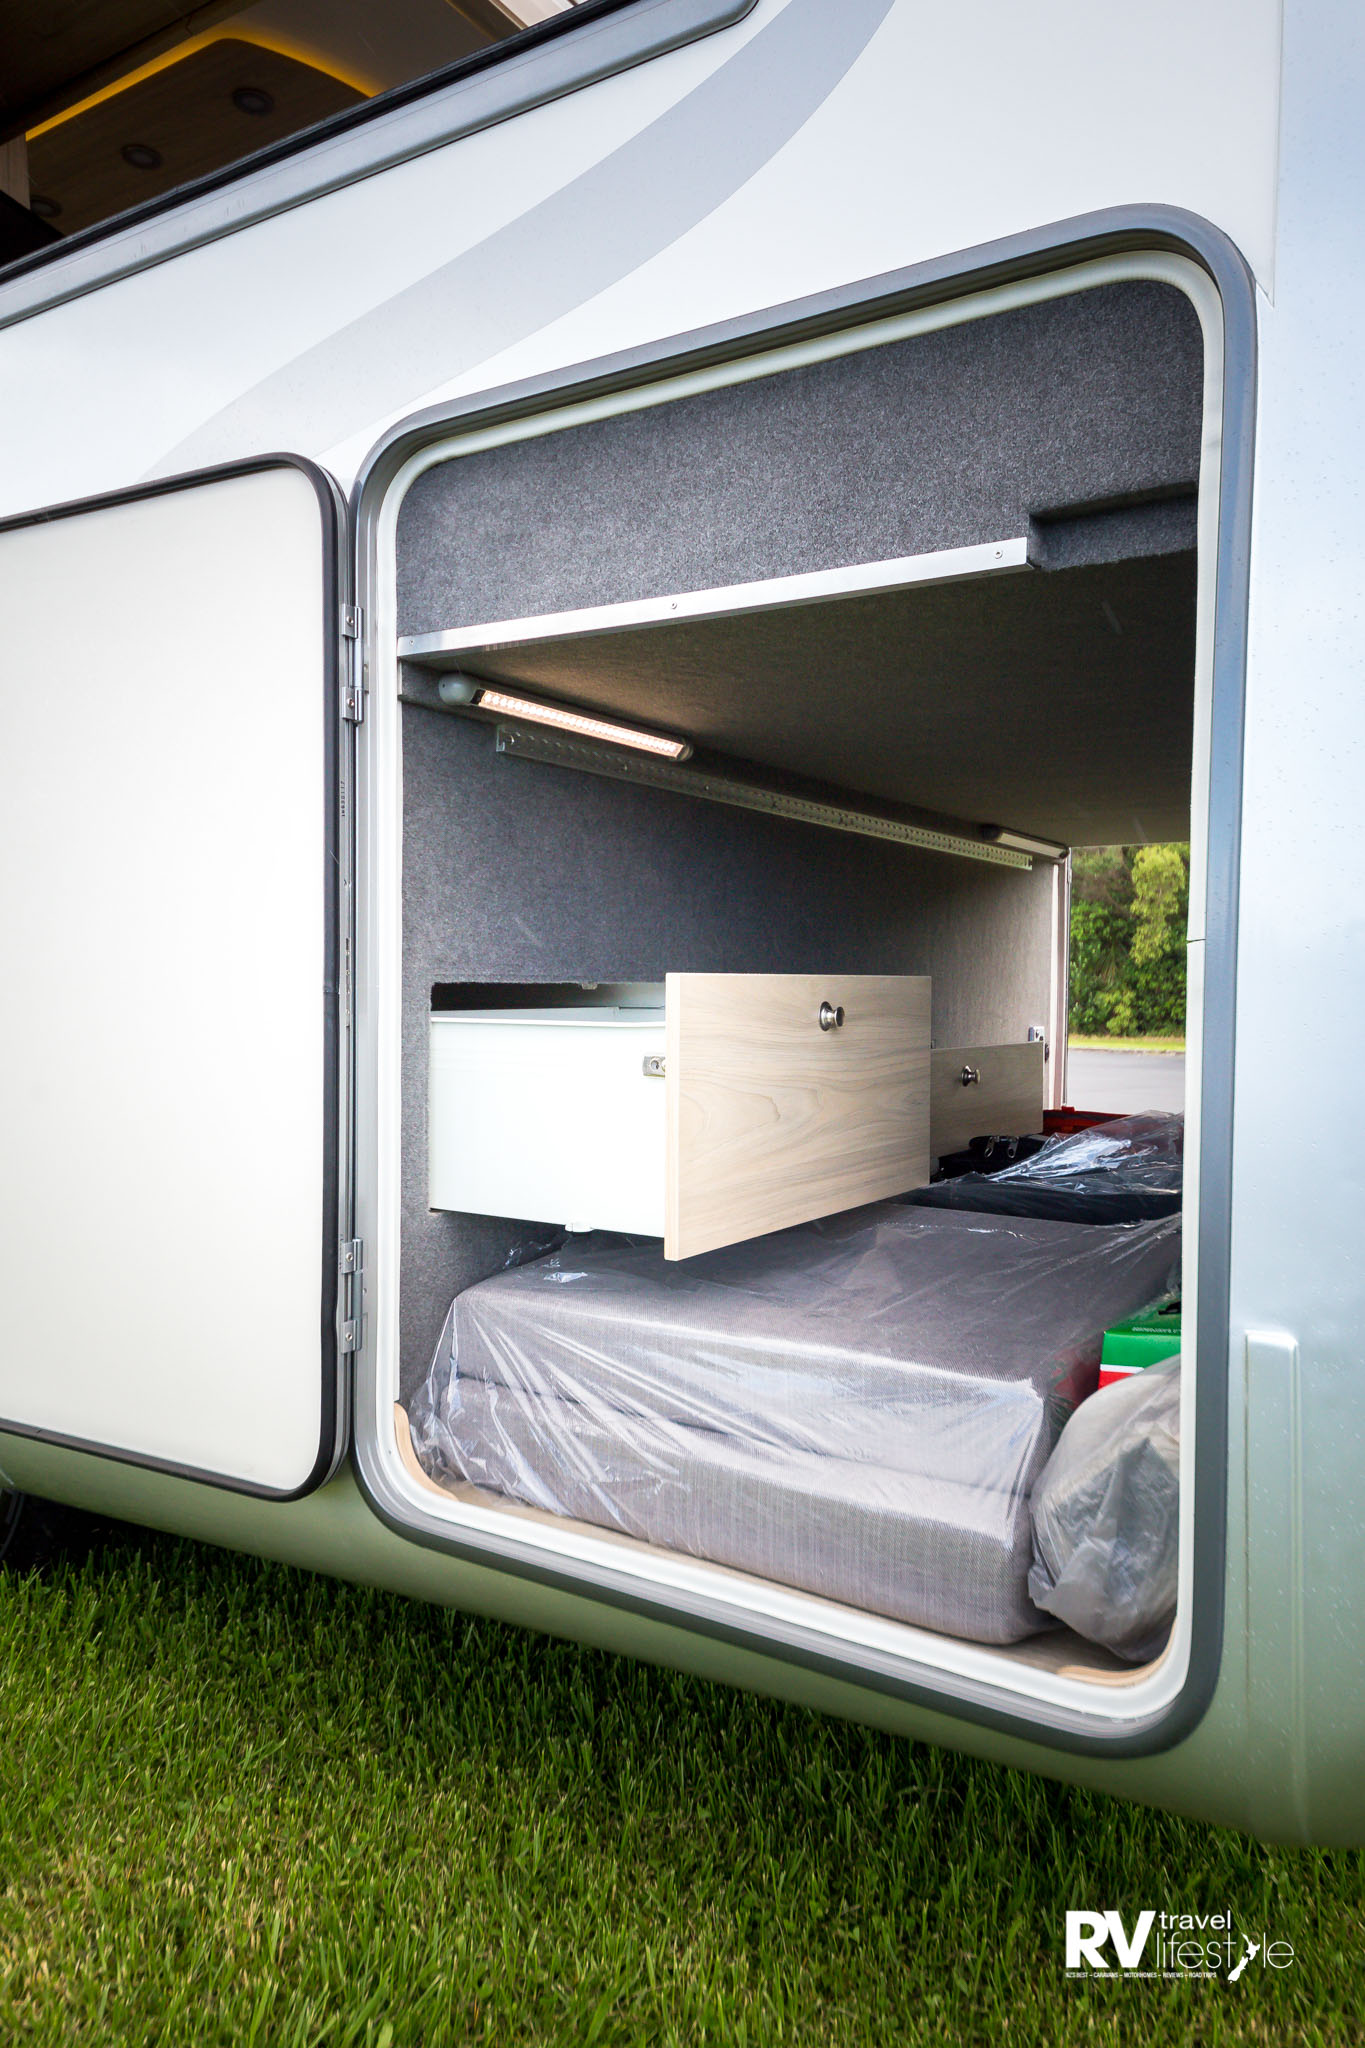 Large rear storage cubby is a feature of both RVs and features pull-out storage drawers